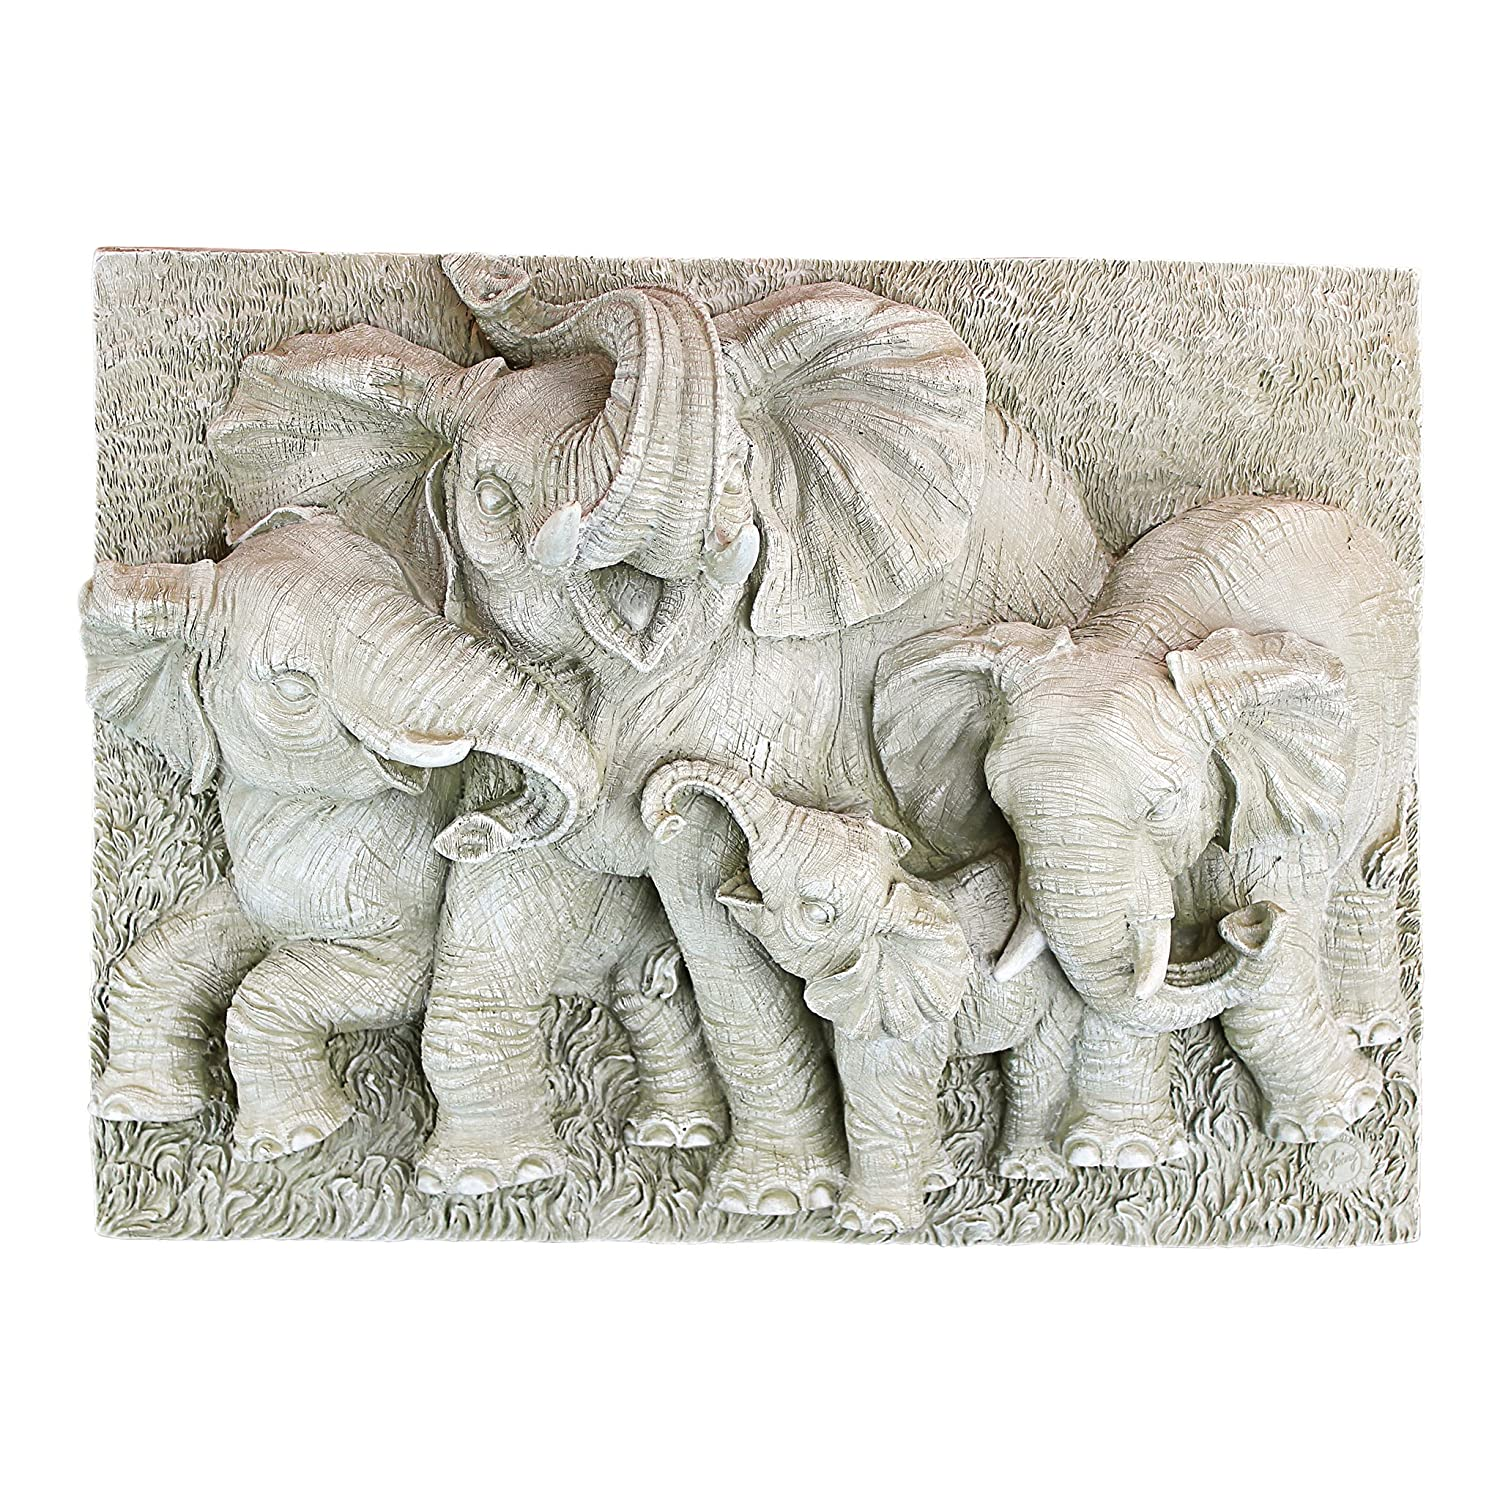 Design Toscano EU9326 Gentle Giants of the Namibia Wall Sculpture - Greystone